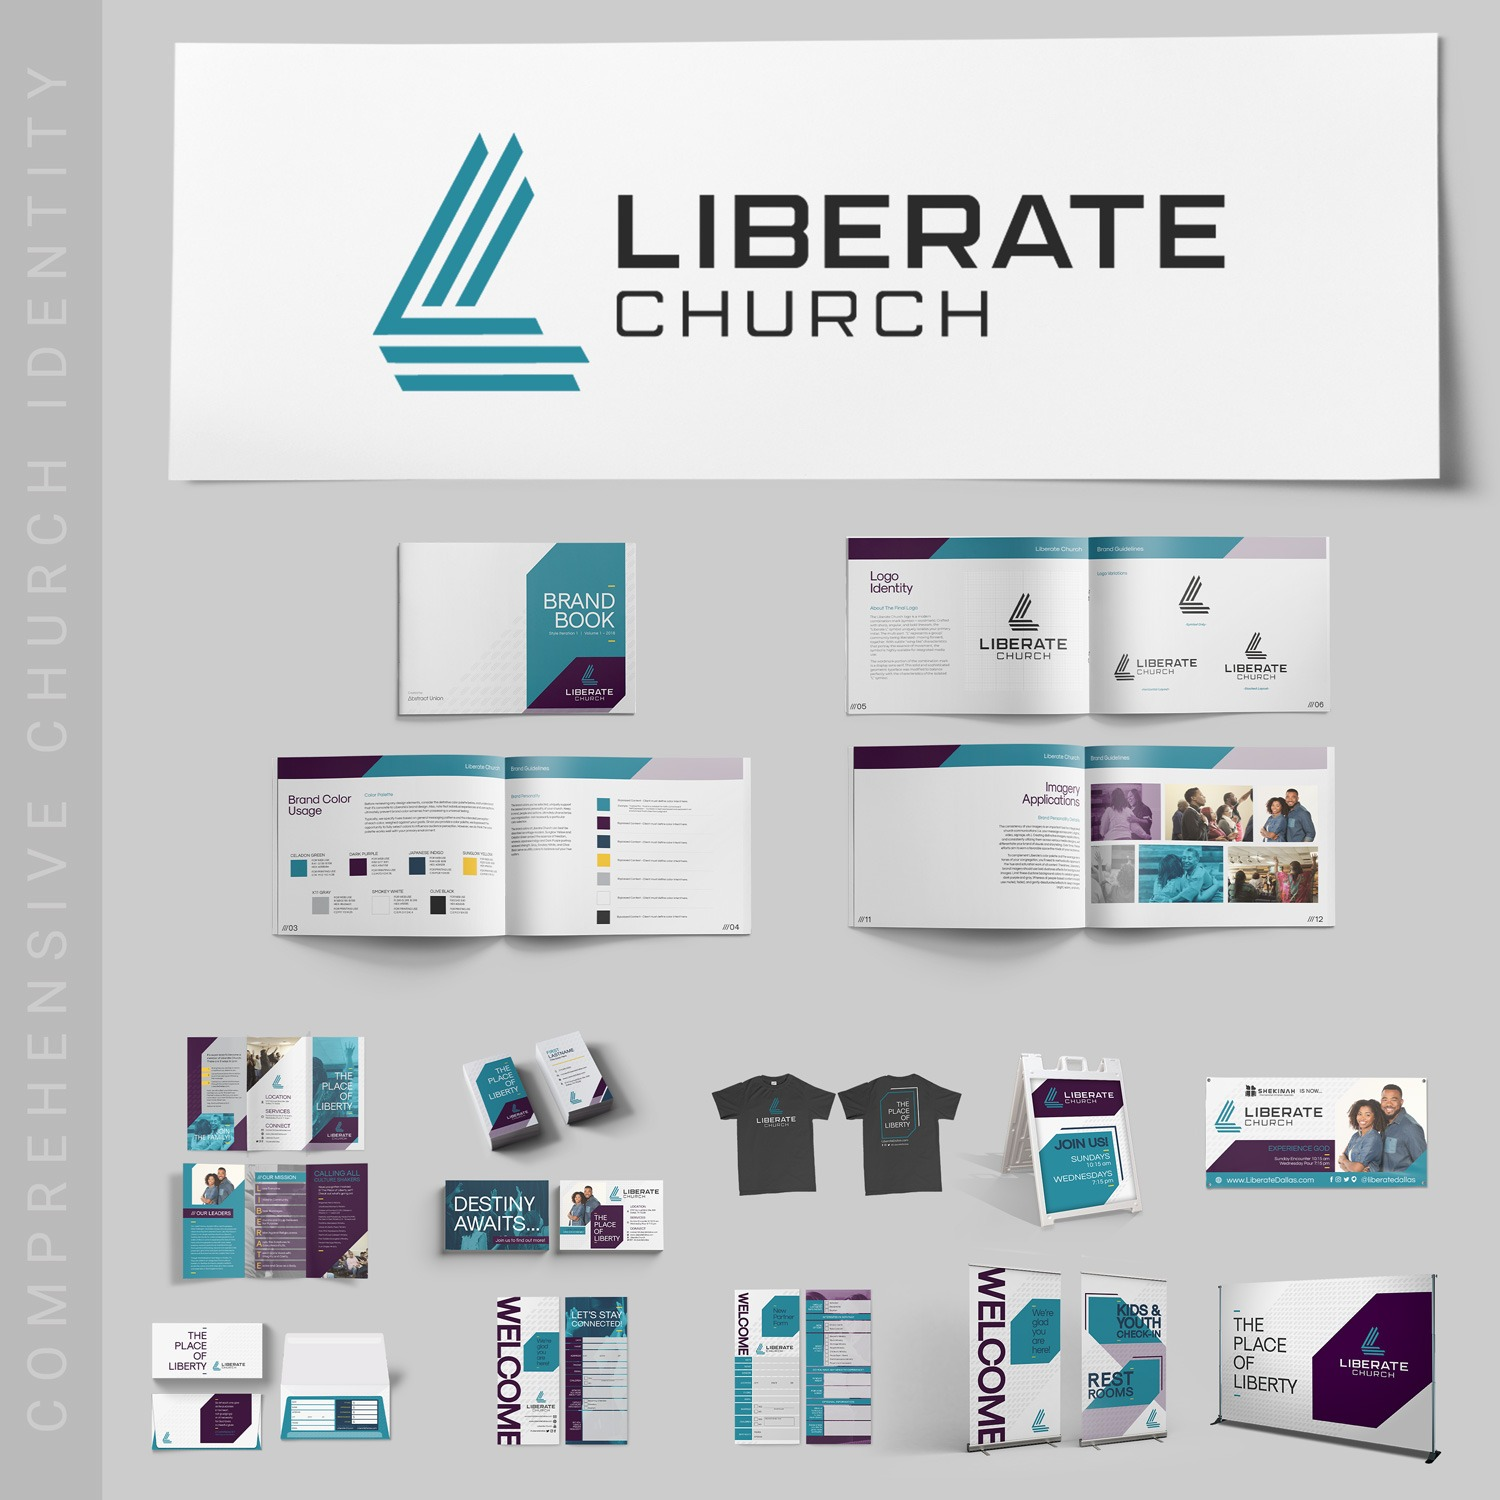 Modern church logo examples for non-denominational church brand identity guidelines by Abstract Union